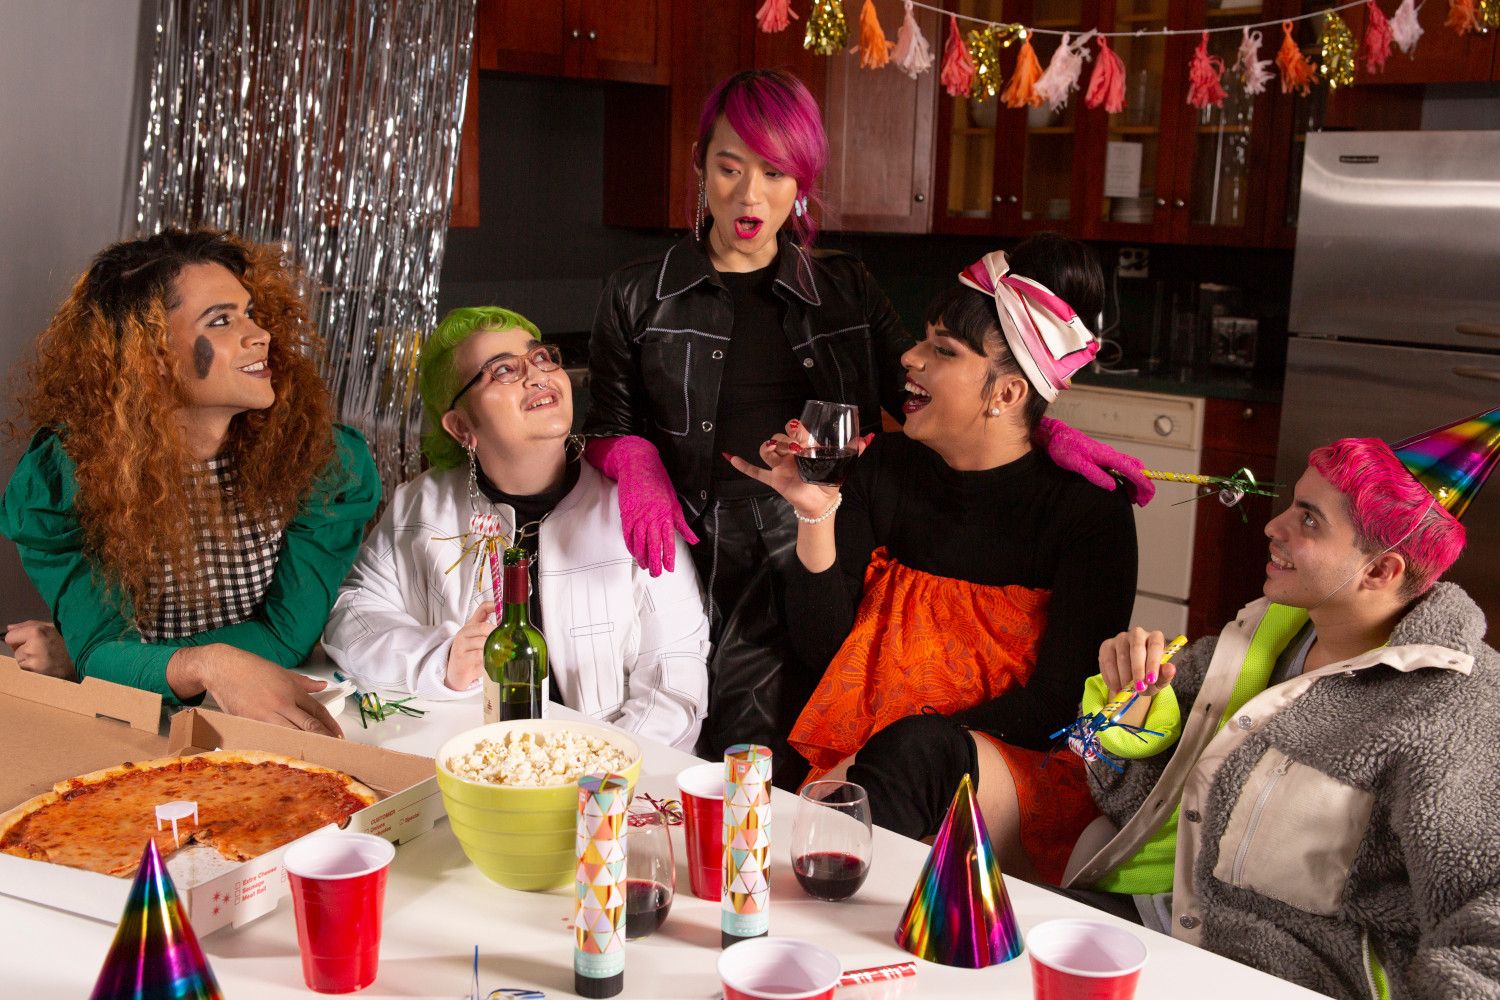 A group of friends of varying genders having a party